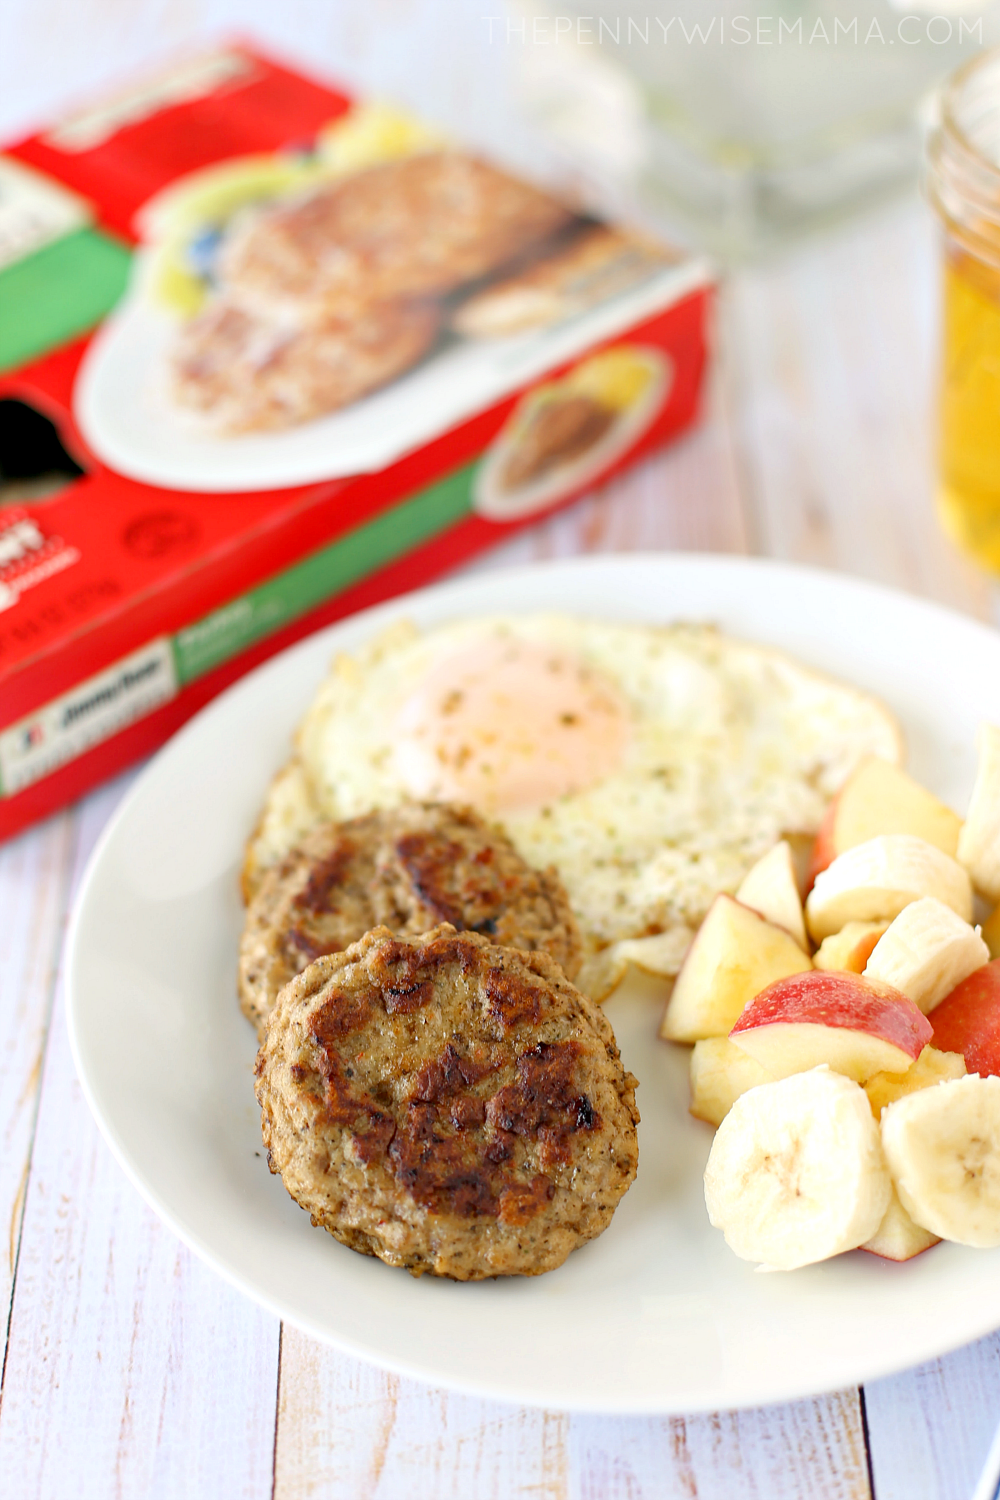 Easy Breakfast Featuring Jimmy Dean Fully Cooked Turkey Sausage Patties